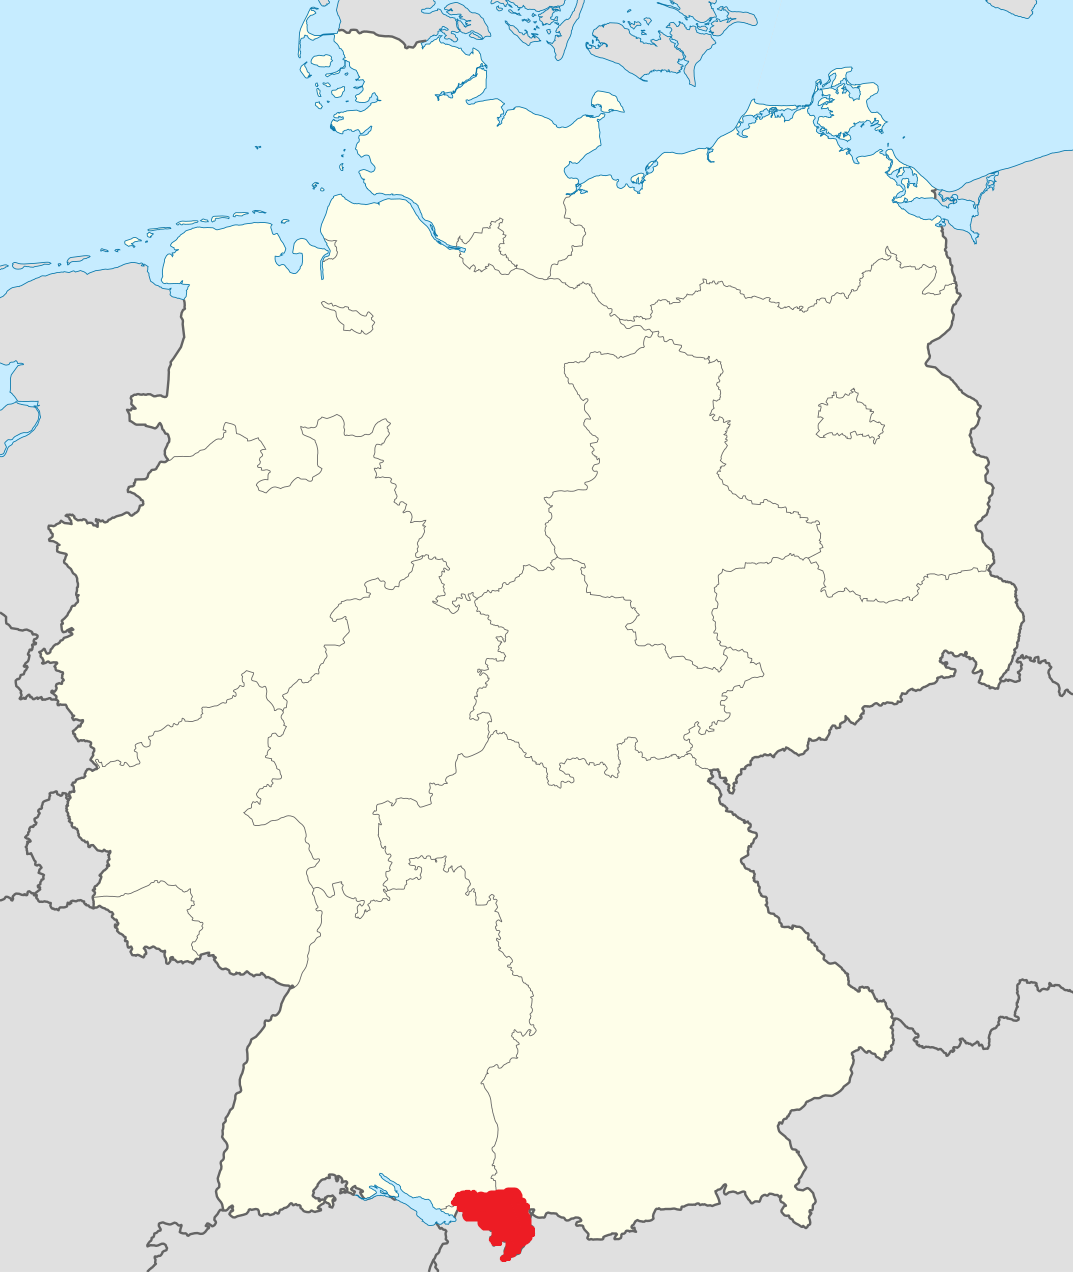 Allgäu in Germany (red)